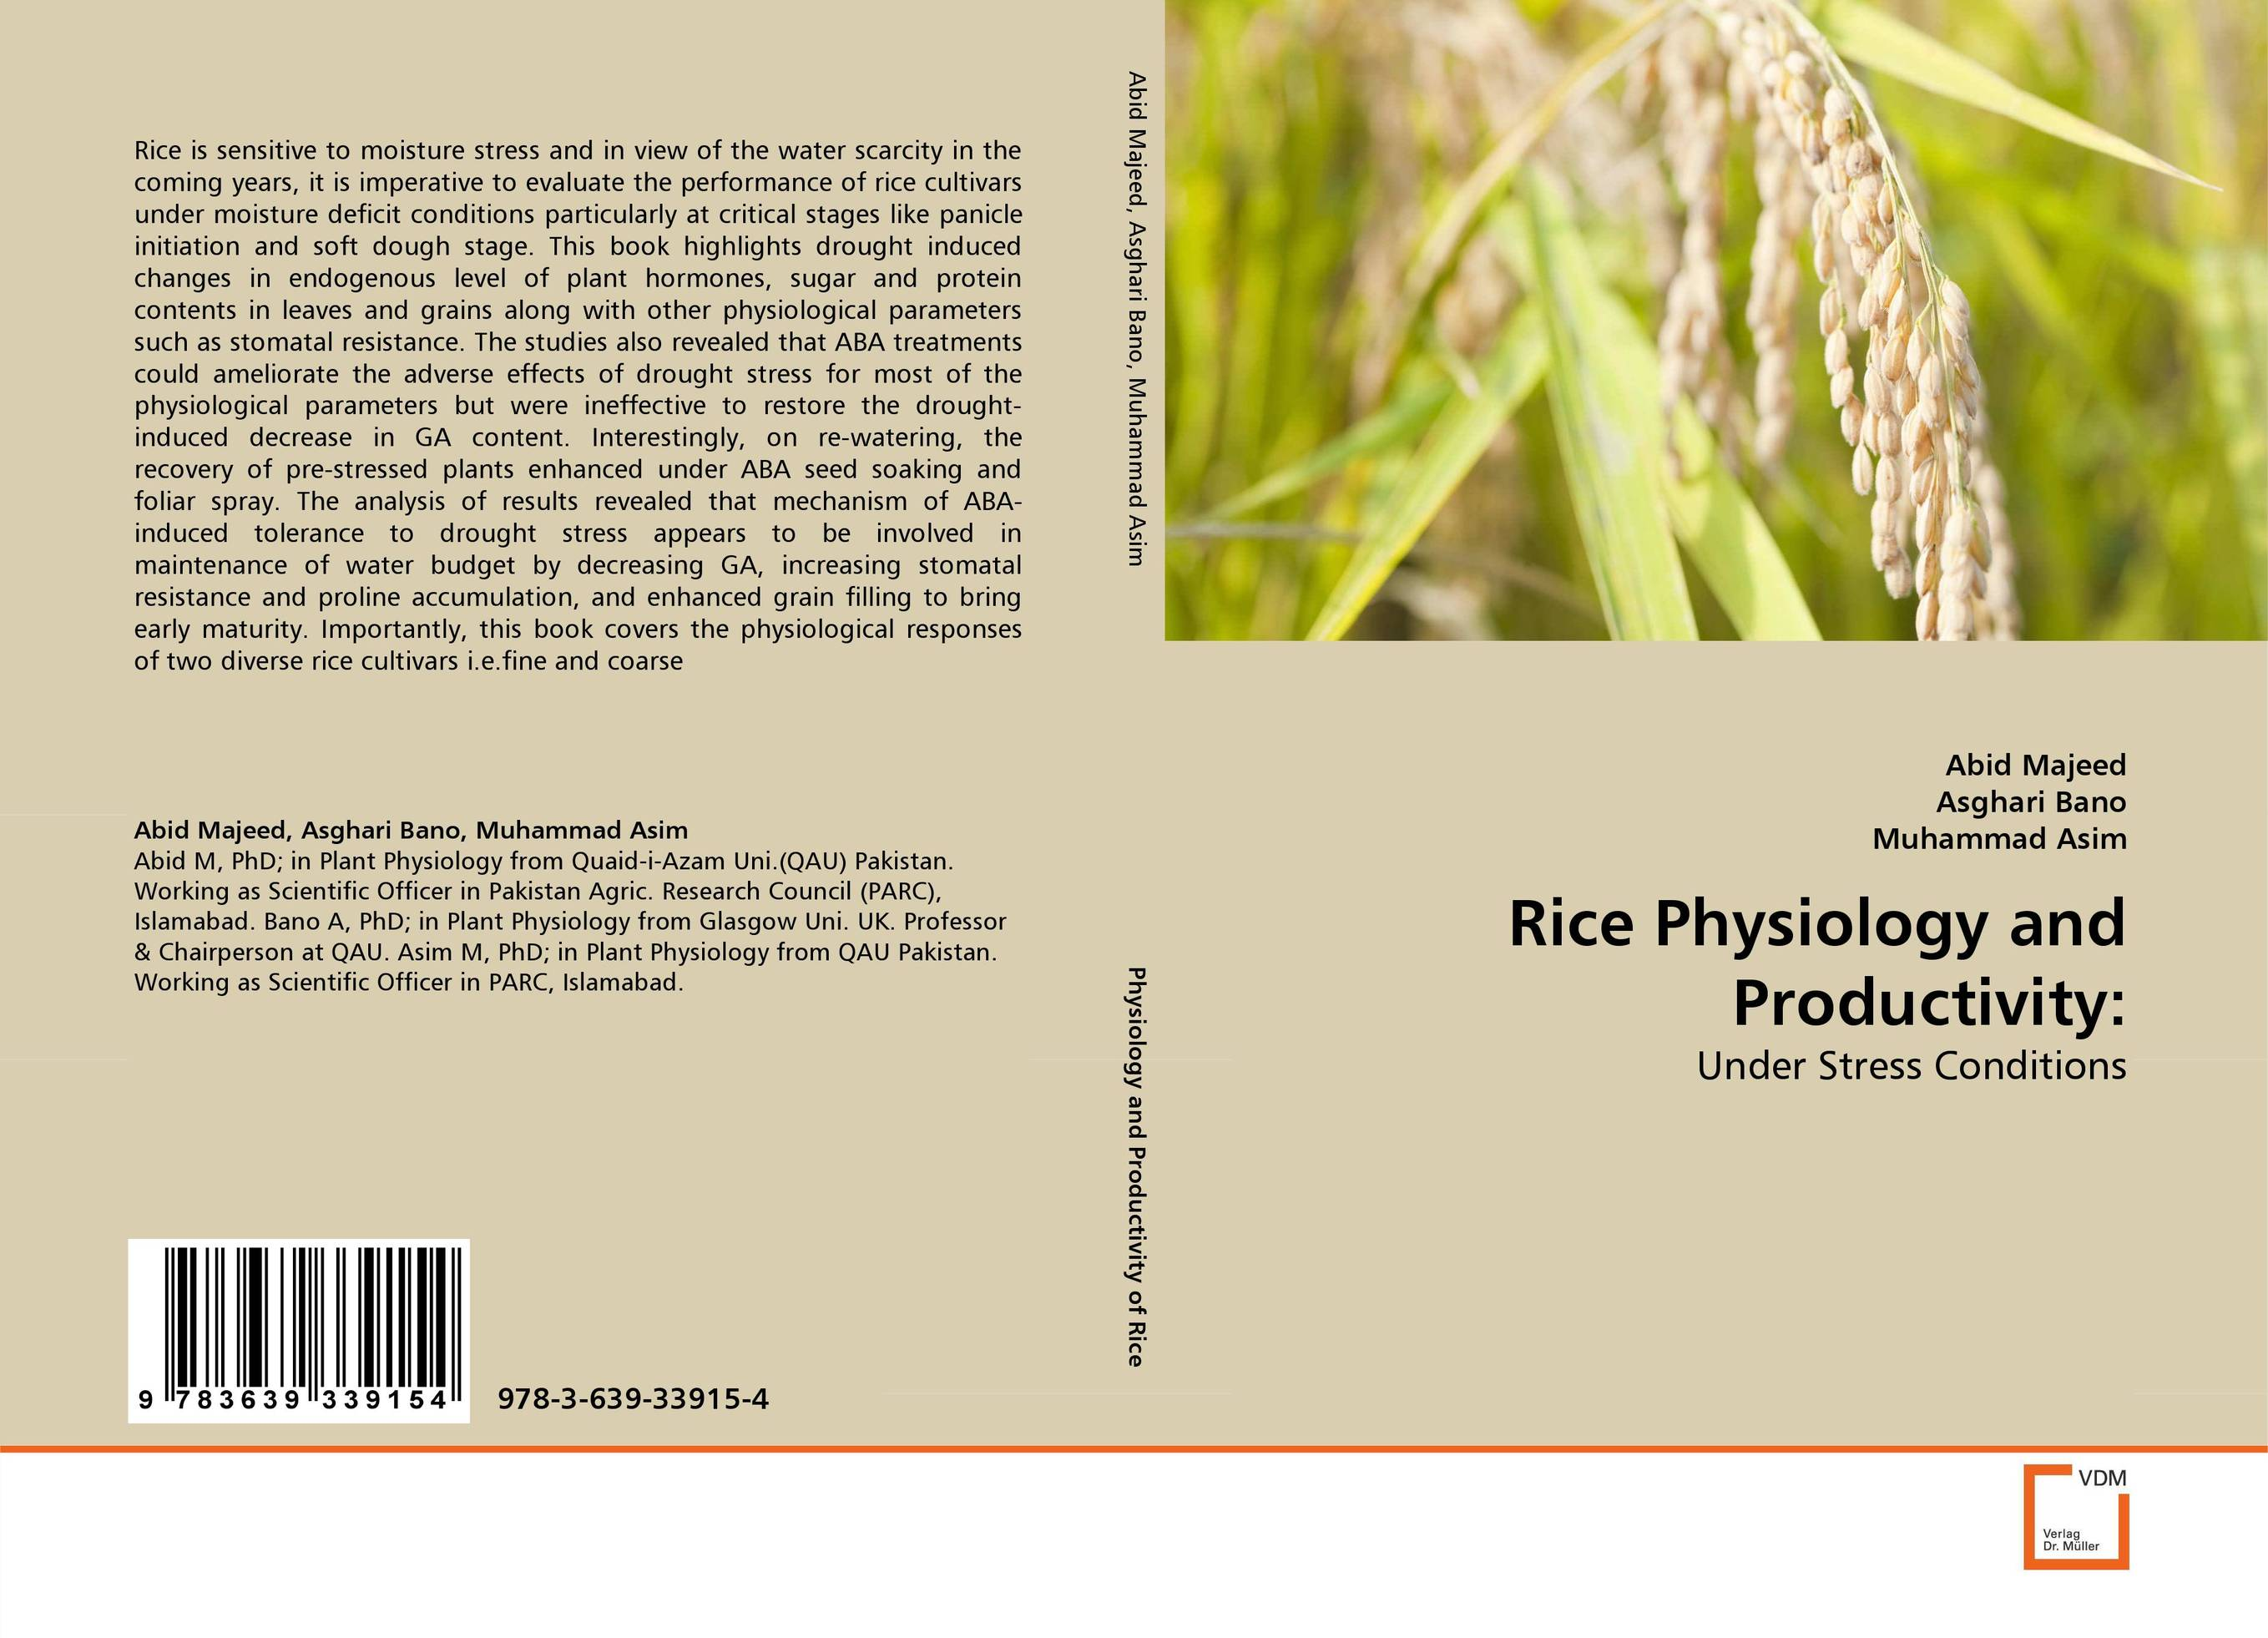 Rice Physiology and Productivity: cold tolerance in rice cultivars and their heterosis studies